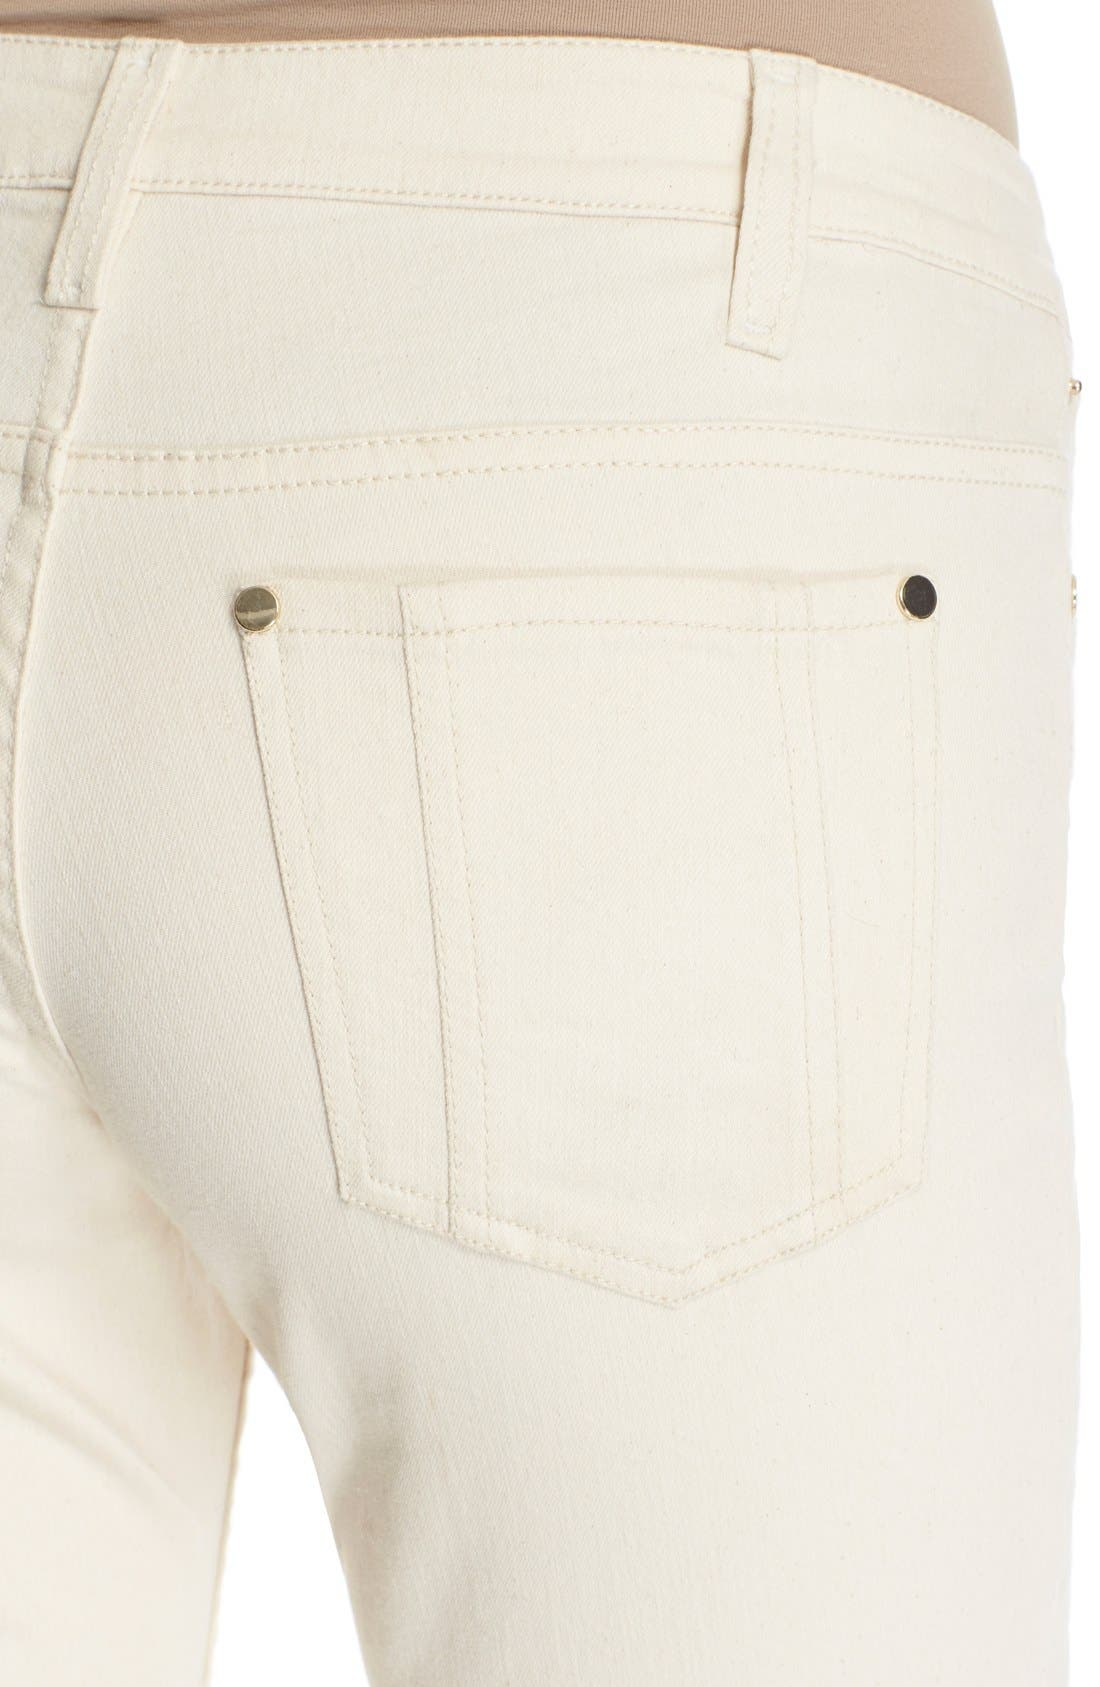 'Ryley' Embroidered Flare Jeans,                             Alternate thumbnail 3, color,                             275